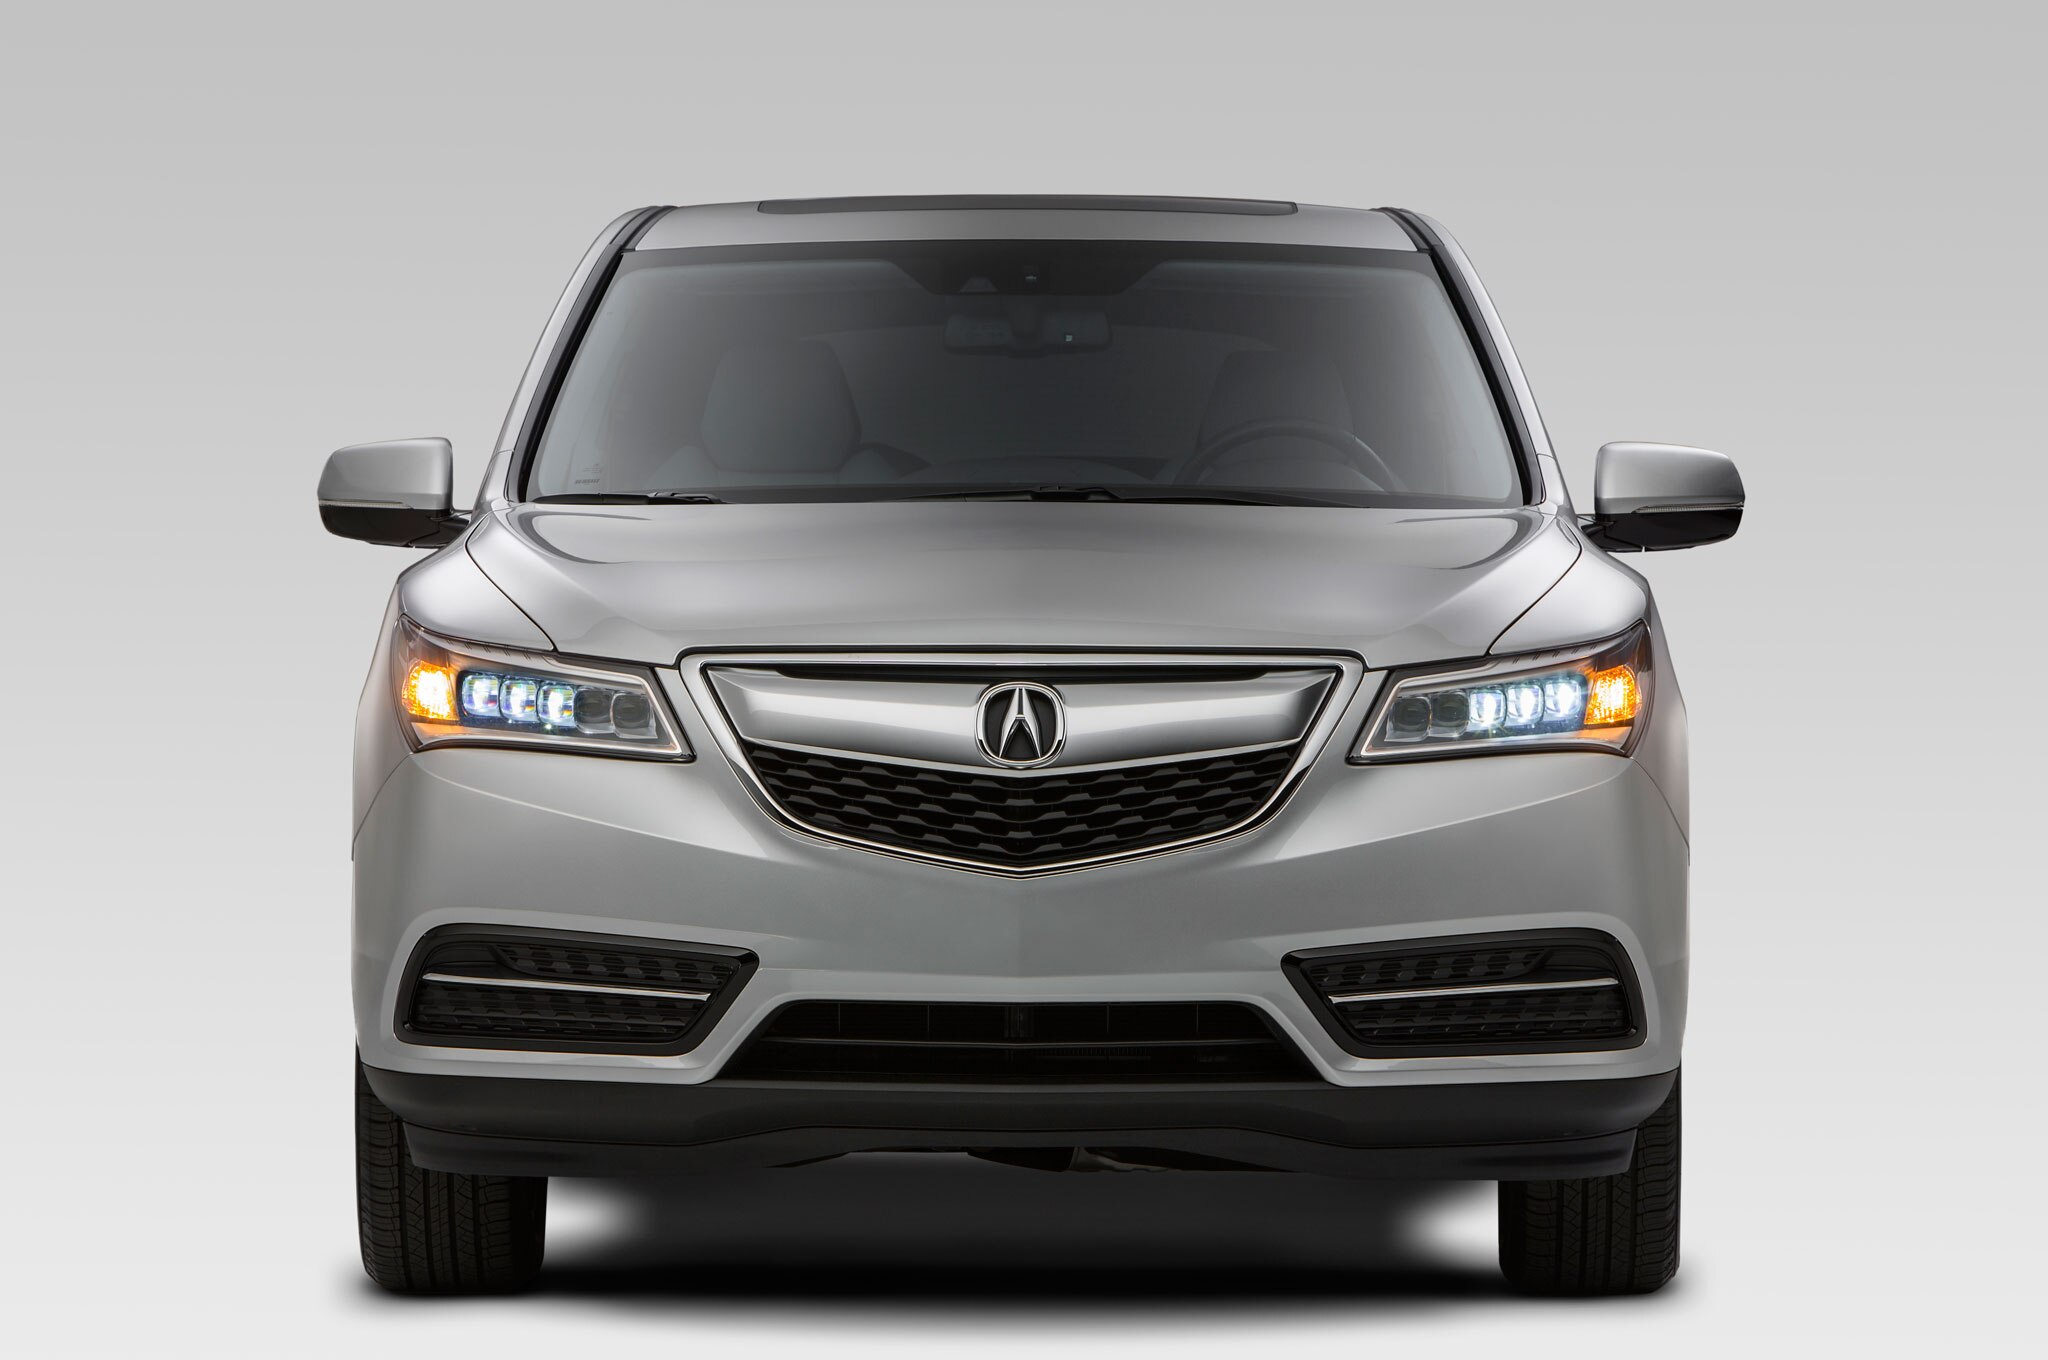 2014 acura mdx crossover priced at 43 185